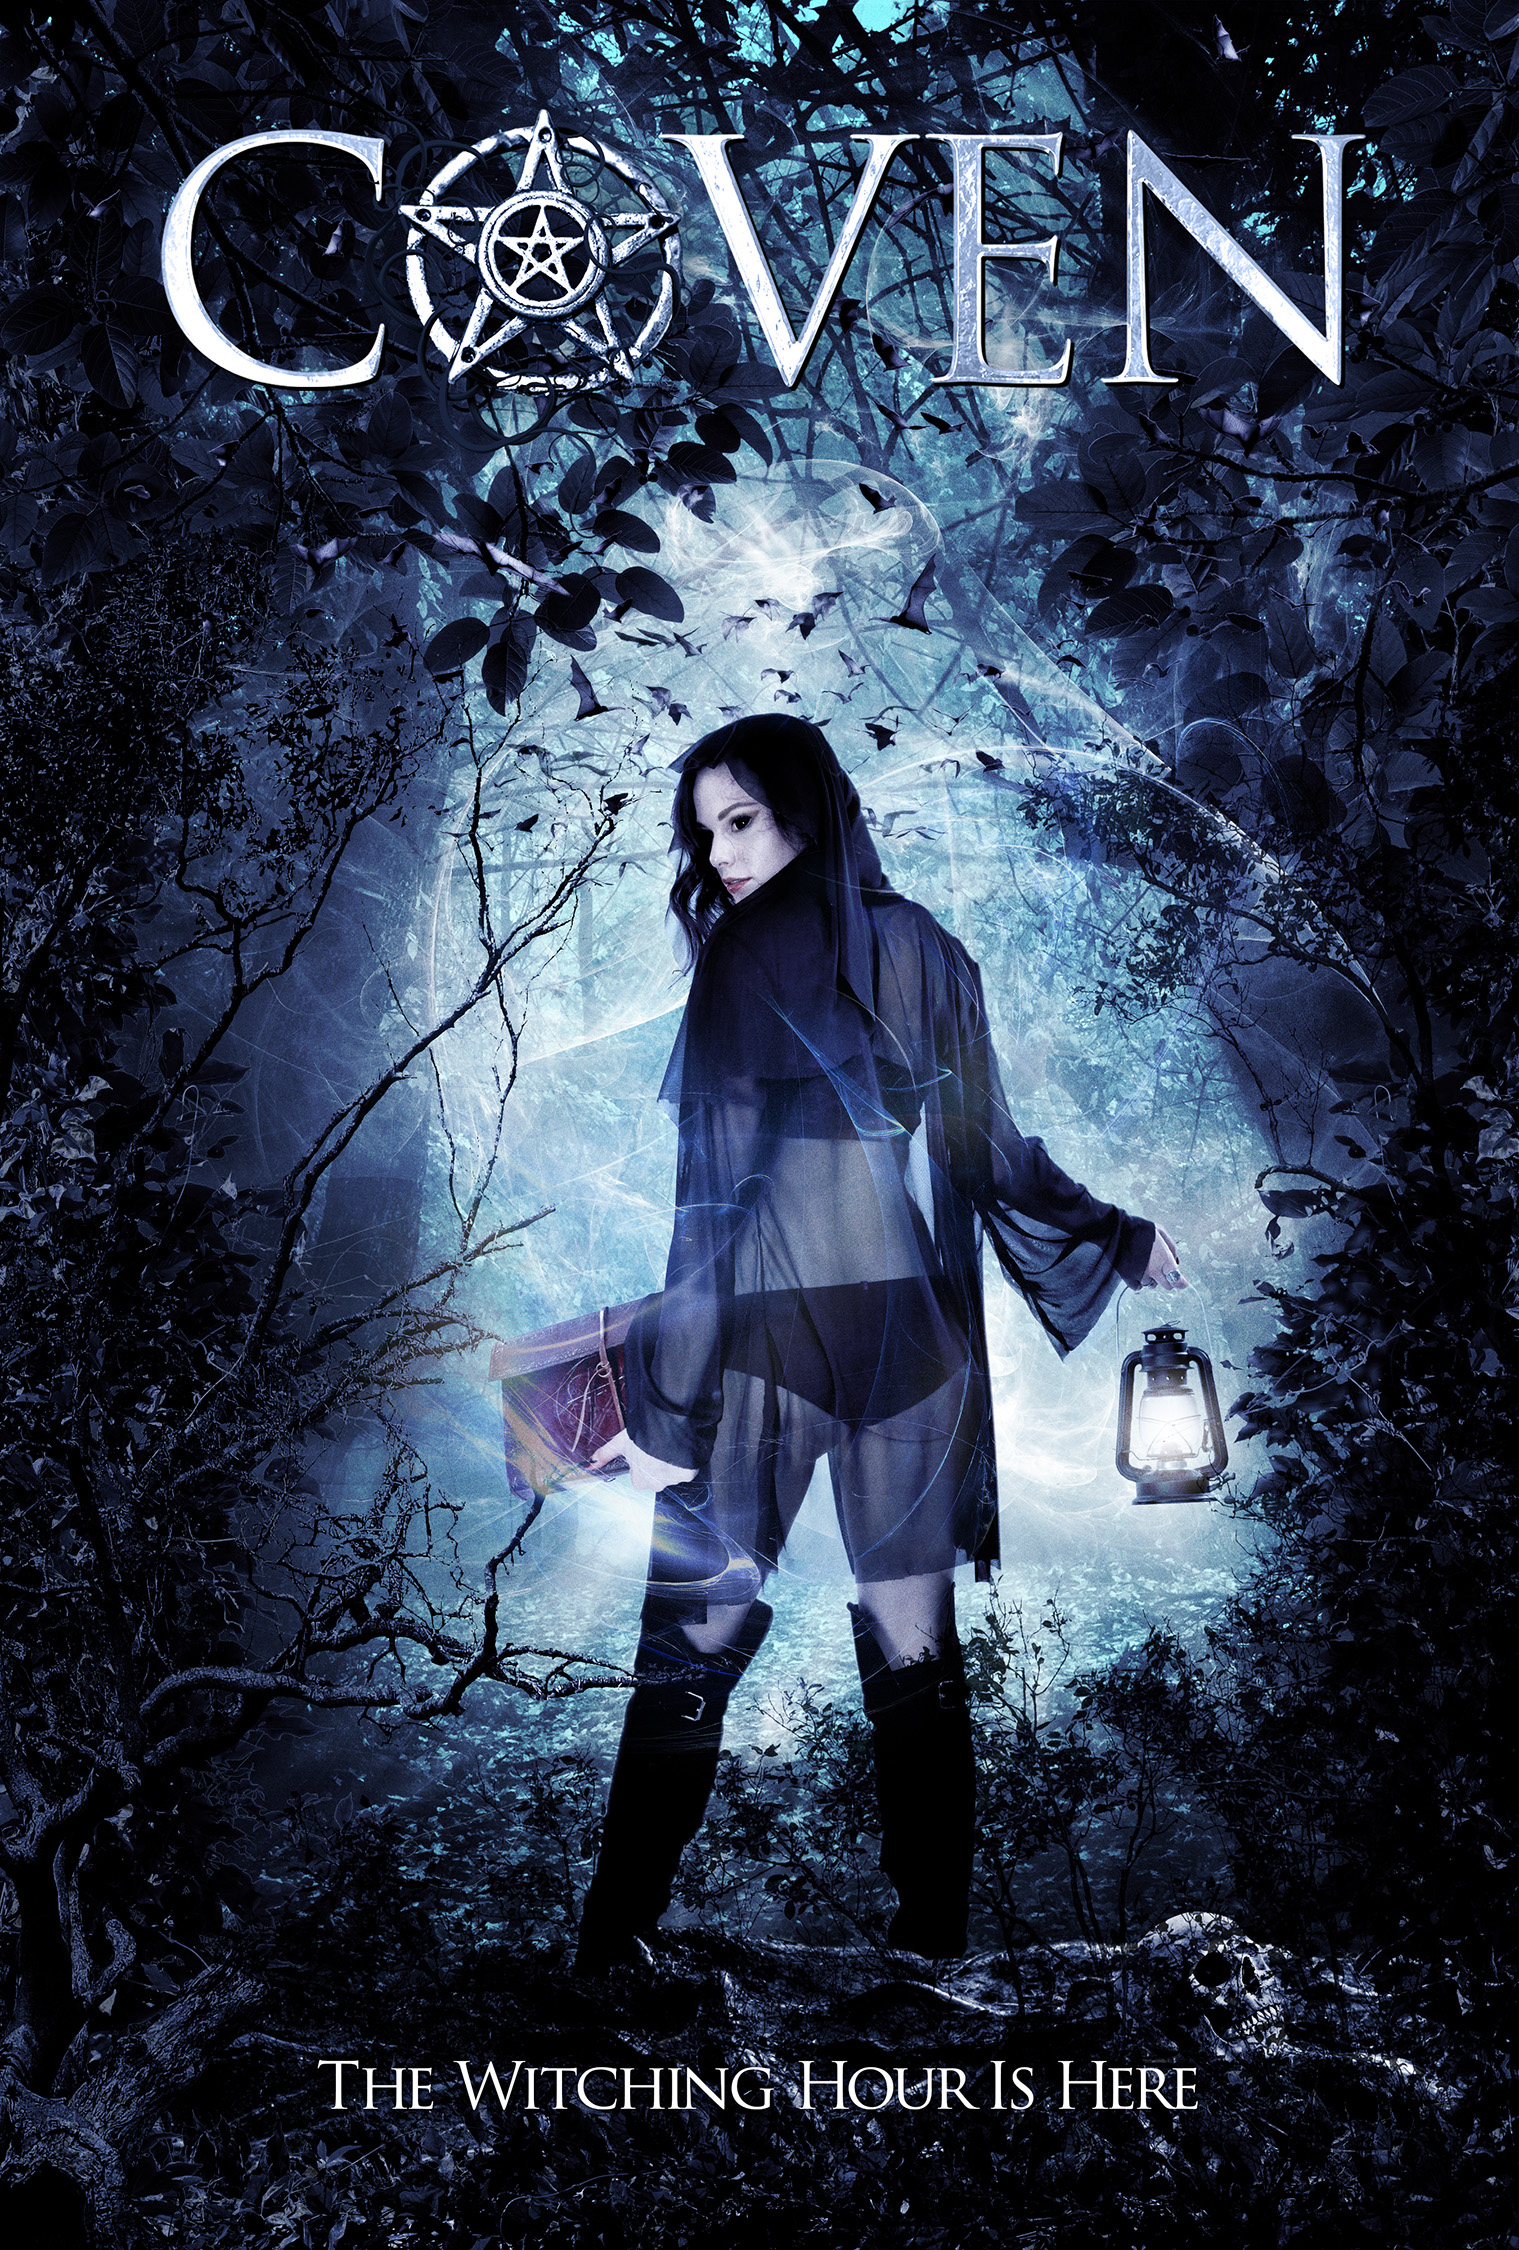 Coven   A coven of witches performs a series of ancient rituals to turn their leader, Ronnie, into a super witch. But when it becomes clear that Ronnie doesn't intend to use her powers for good, the new girl, Sophie, must call upon her own magic in an epic battle.